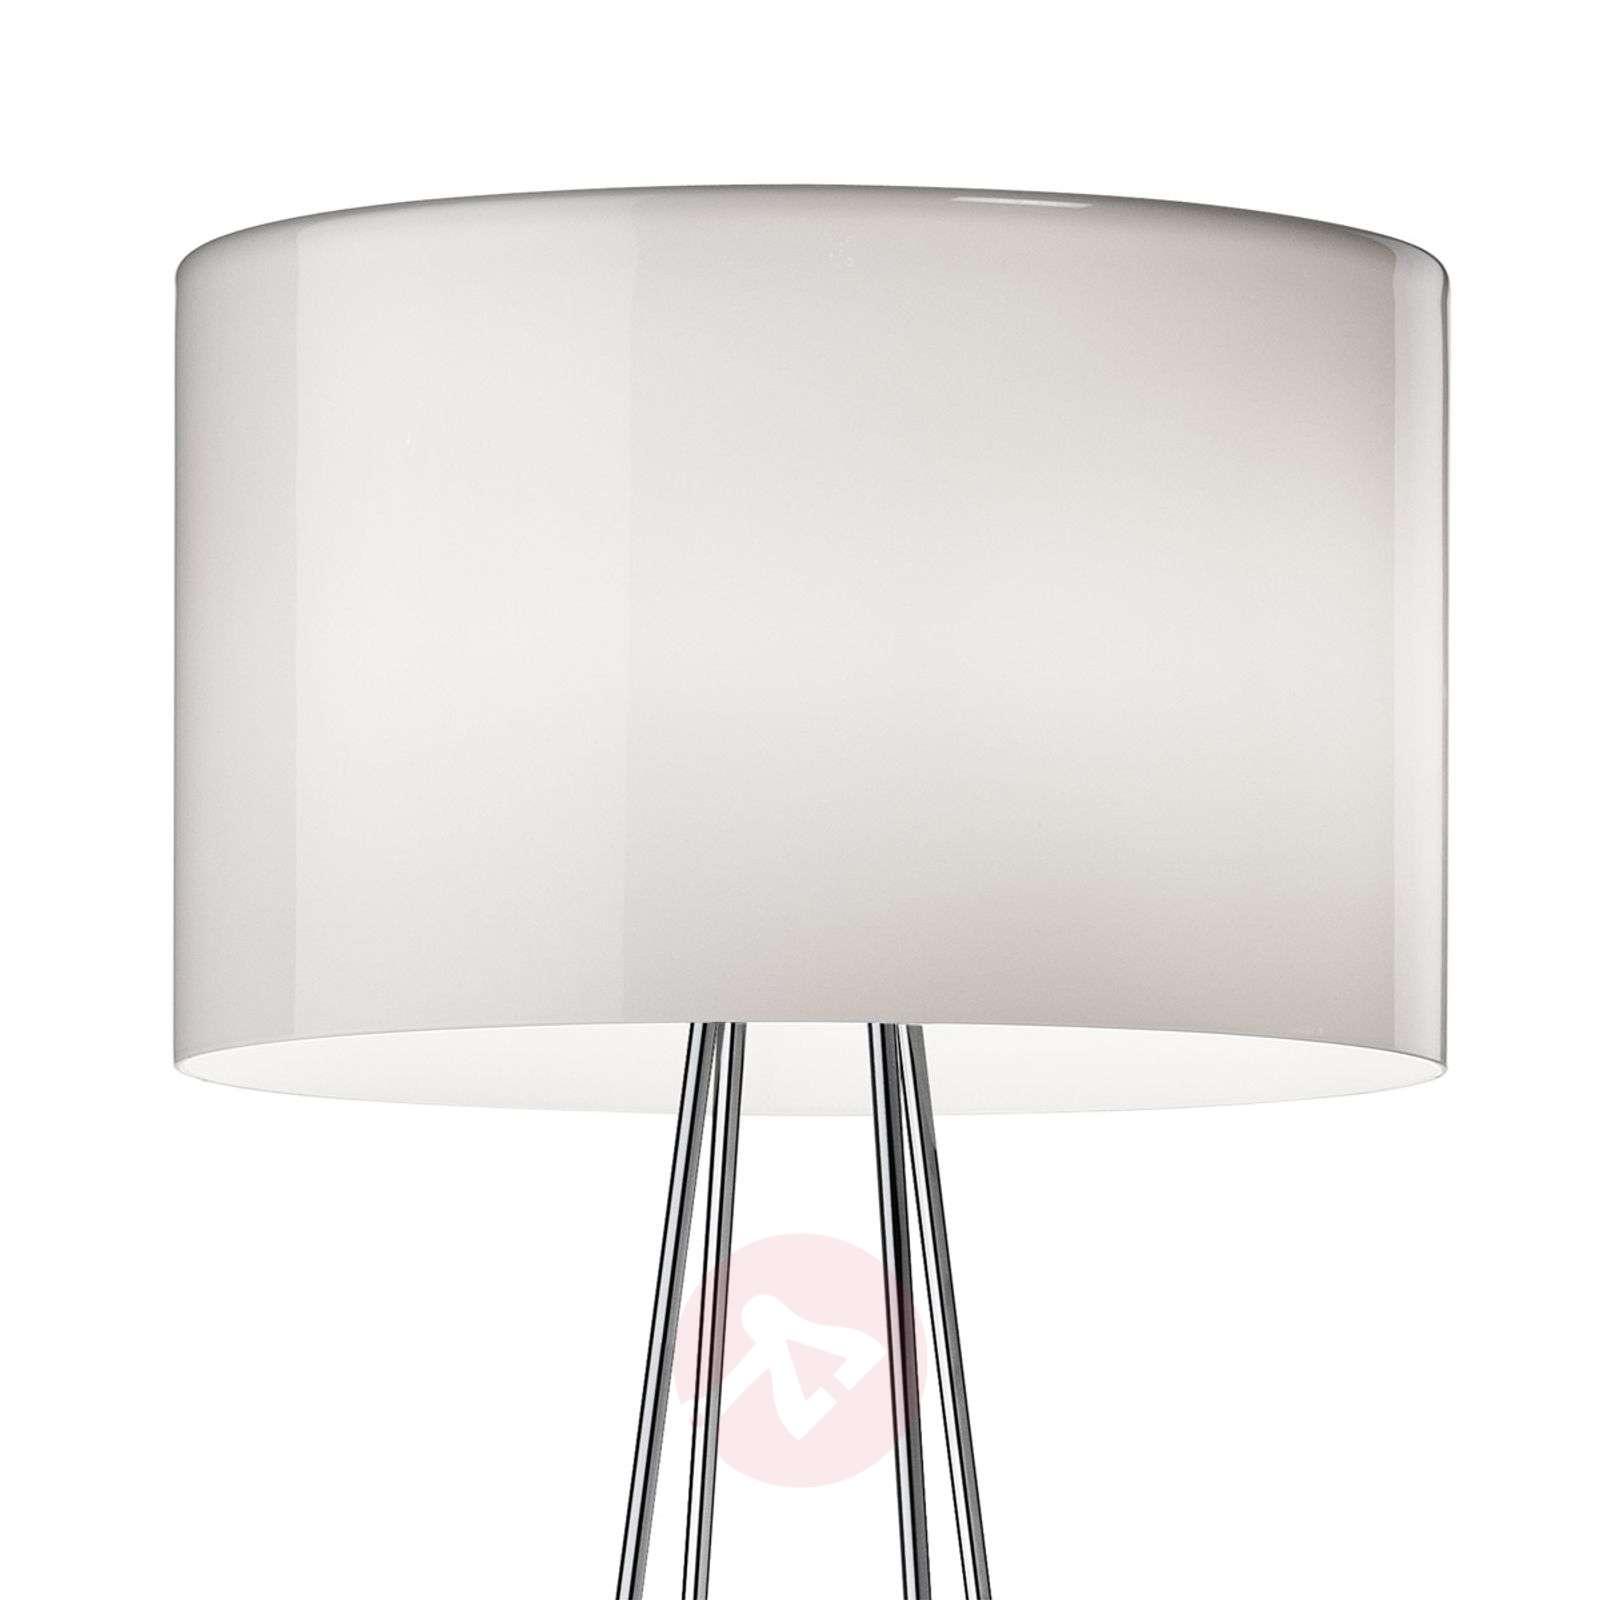 RAY F2 designer floor lamp with dimmer-3510031X-01